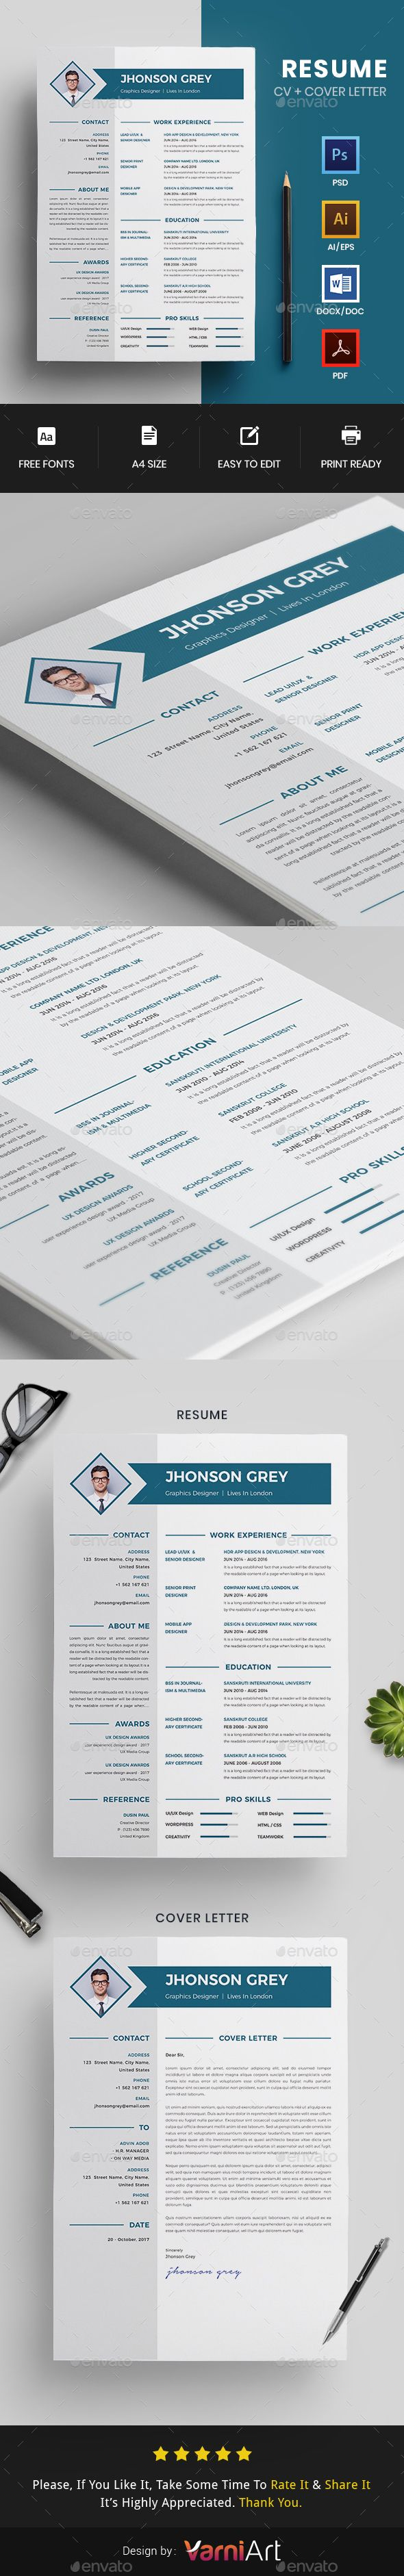 medical reception cover letter%0A CV Resume